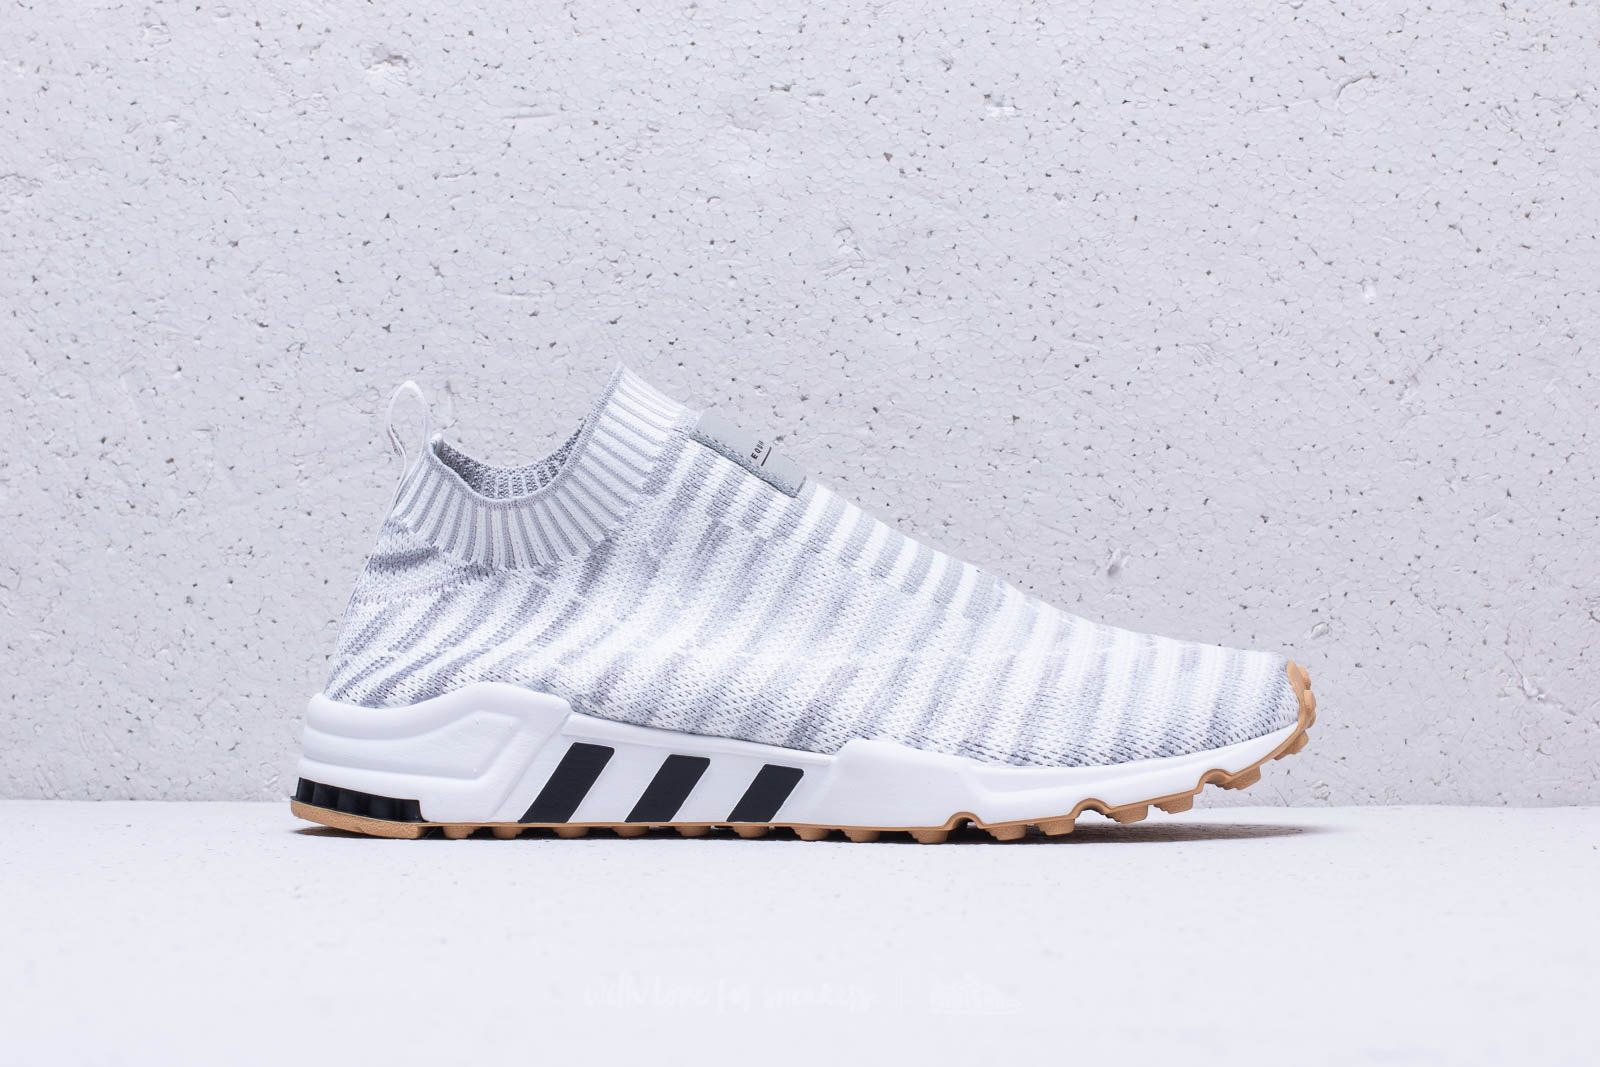 online store e0aba 33045 adidas EQT Support SK Primeknit W Ftw White Crystal White Gum at a great